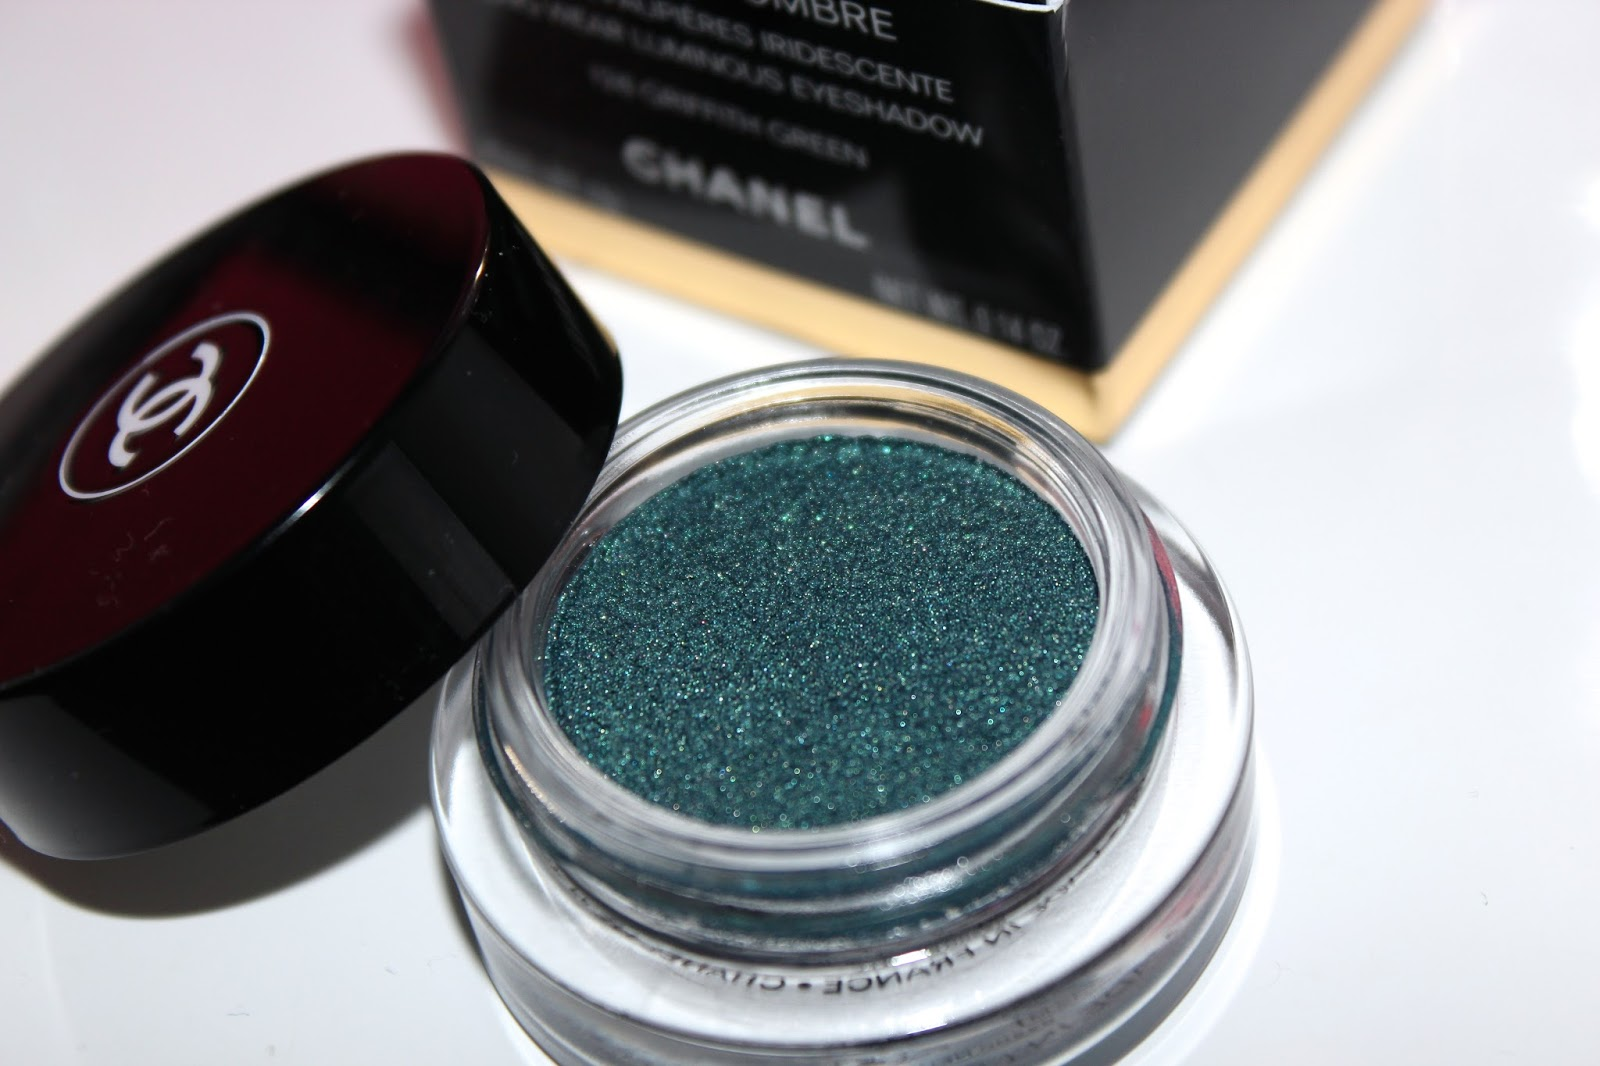 With This Eyeshadow, You Can Either Use A Brush Or Your Fingers To Apply  Ites With A Small Angled Eyeshadow Brush But I'd Prefer To Use My  Fingers As